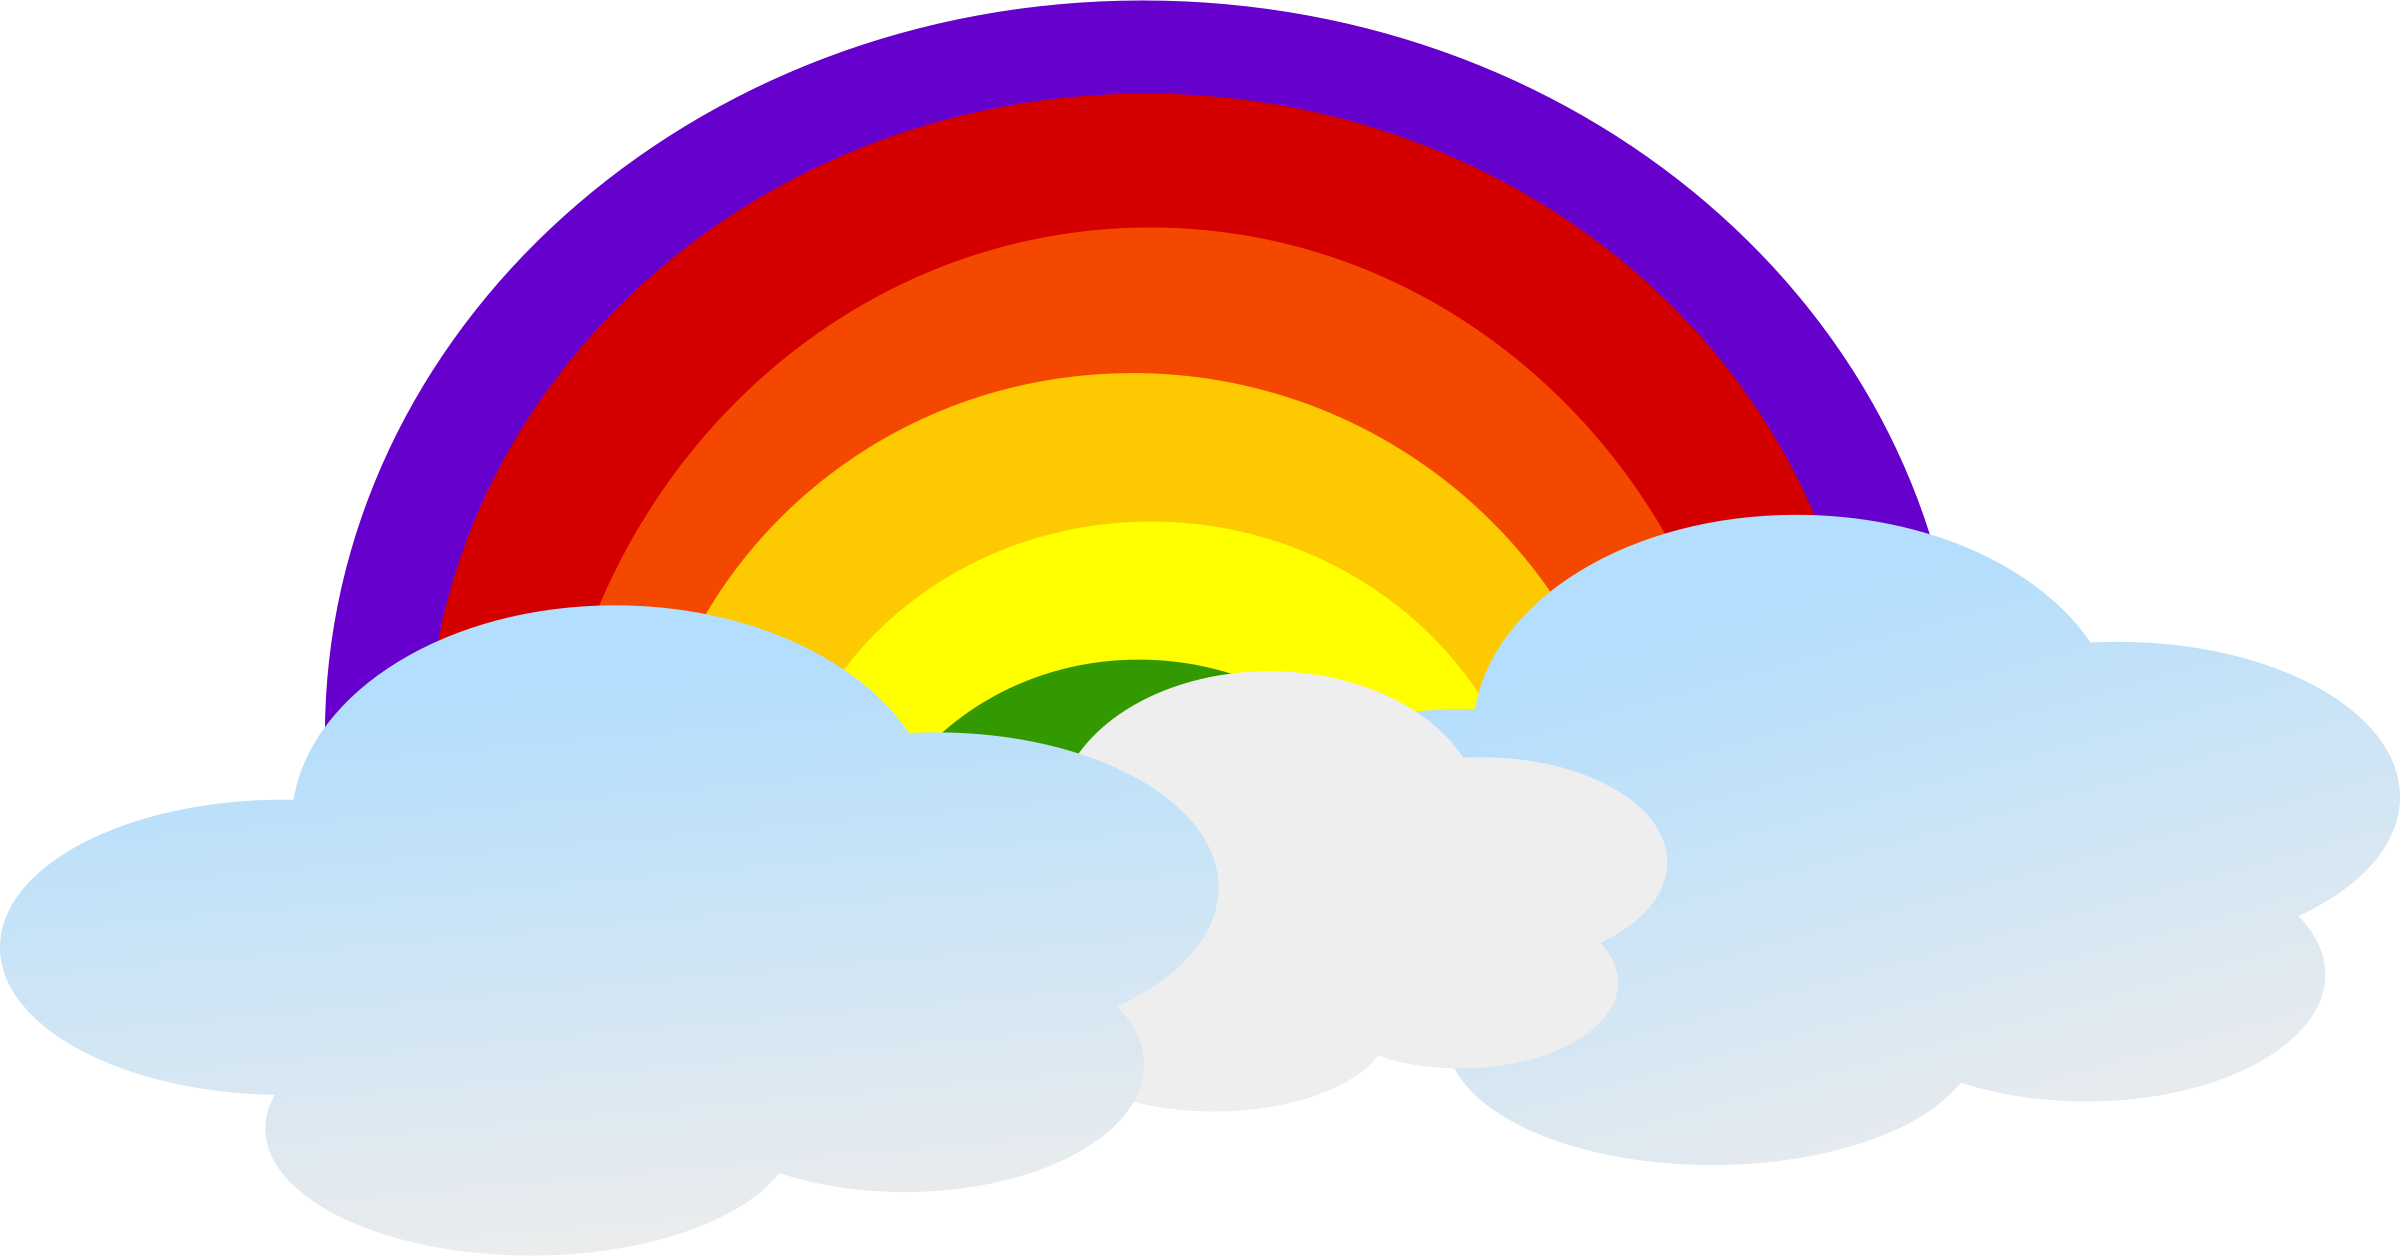 rainbow cloud png